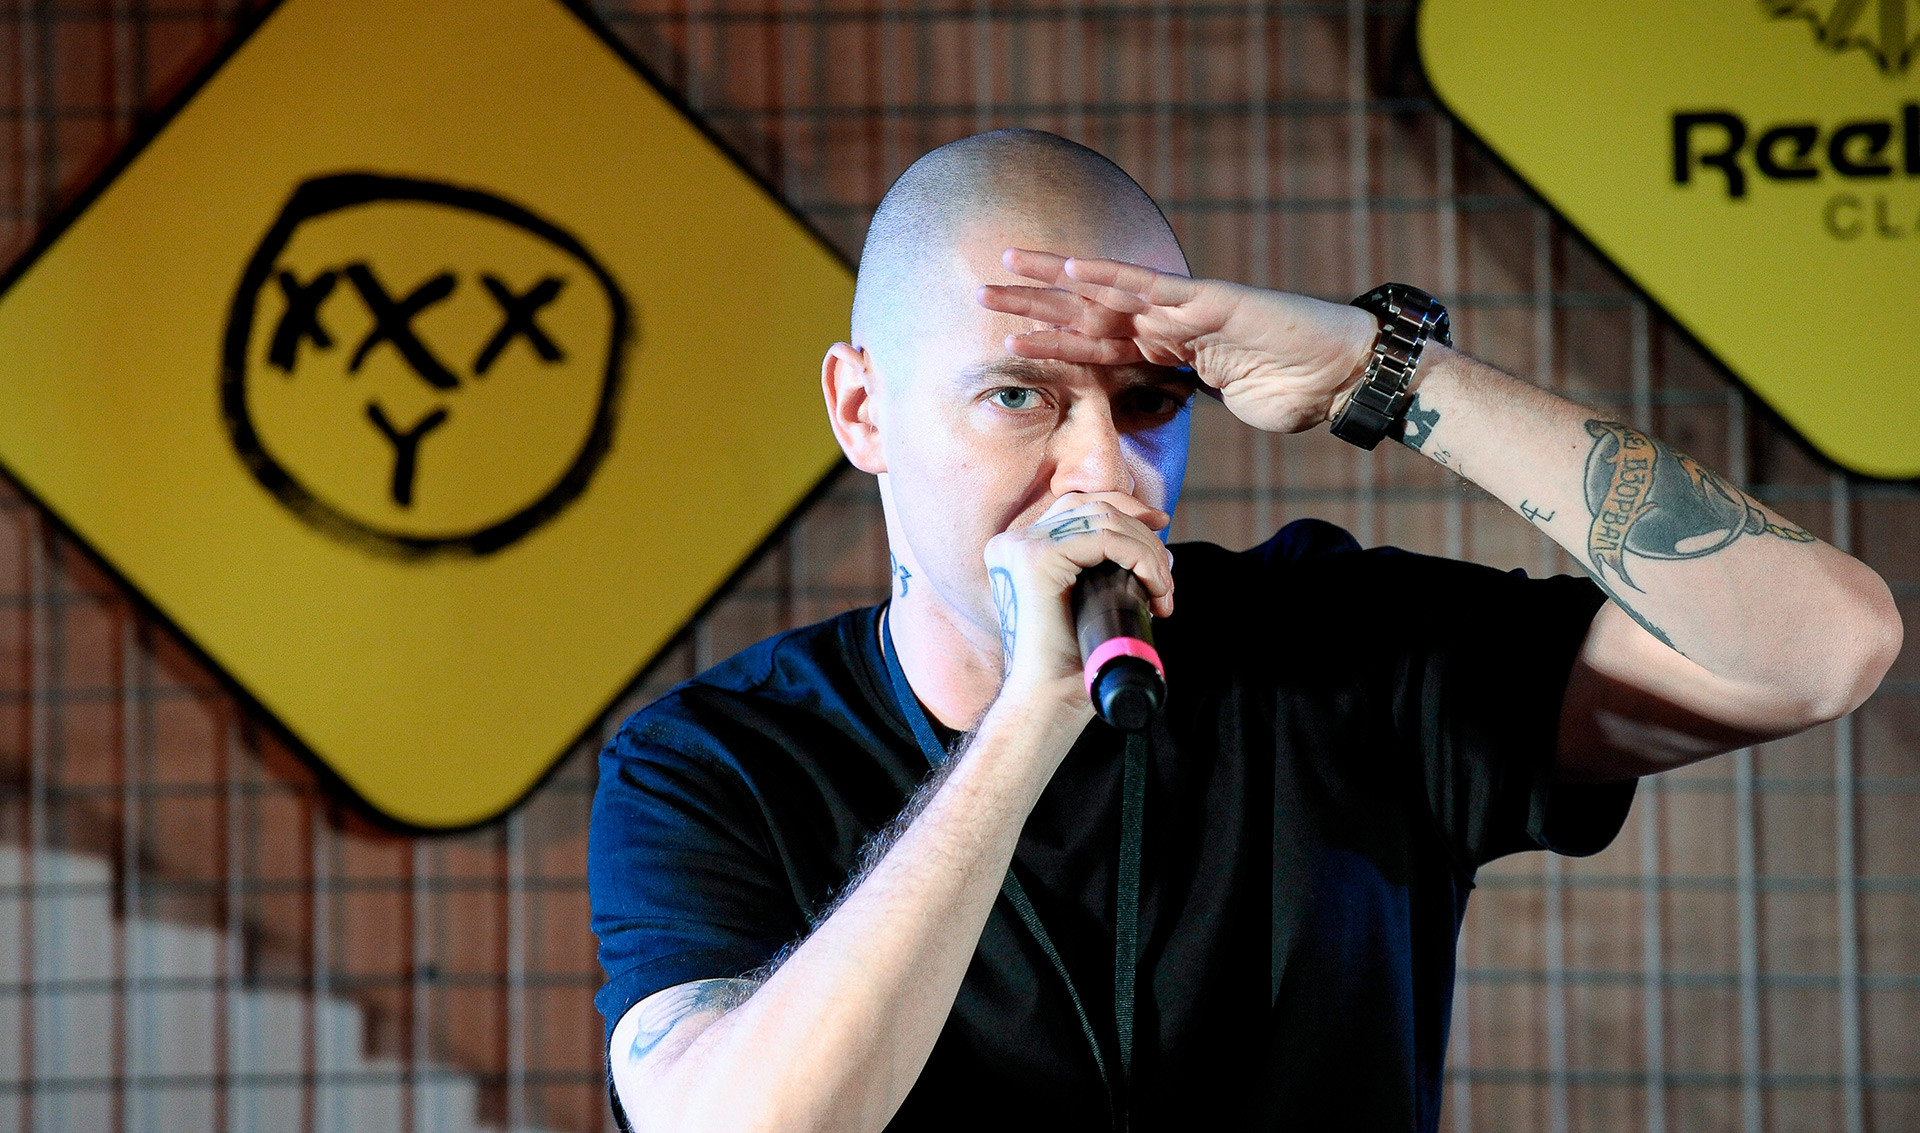 Oxxxymiron (Miron Fedorov) is sometimes called